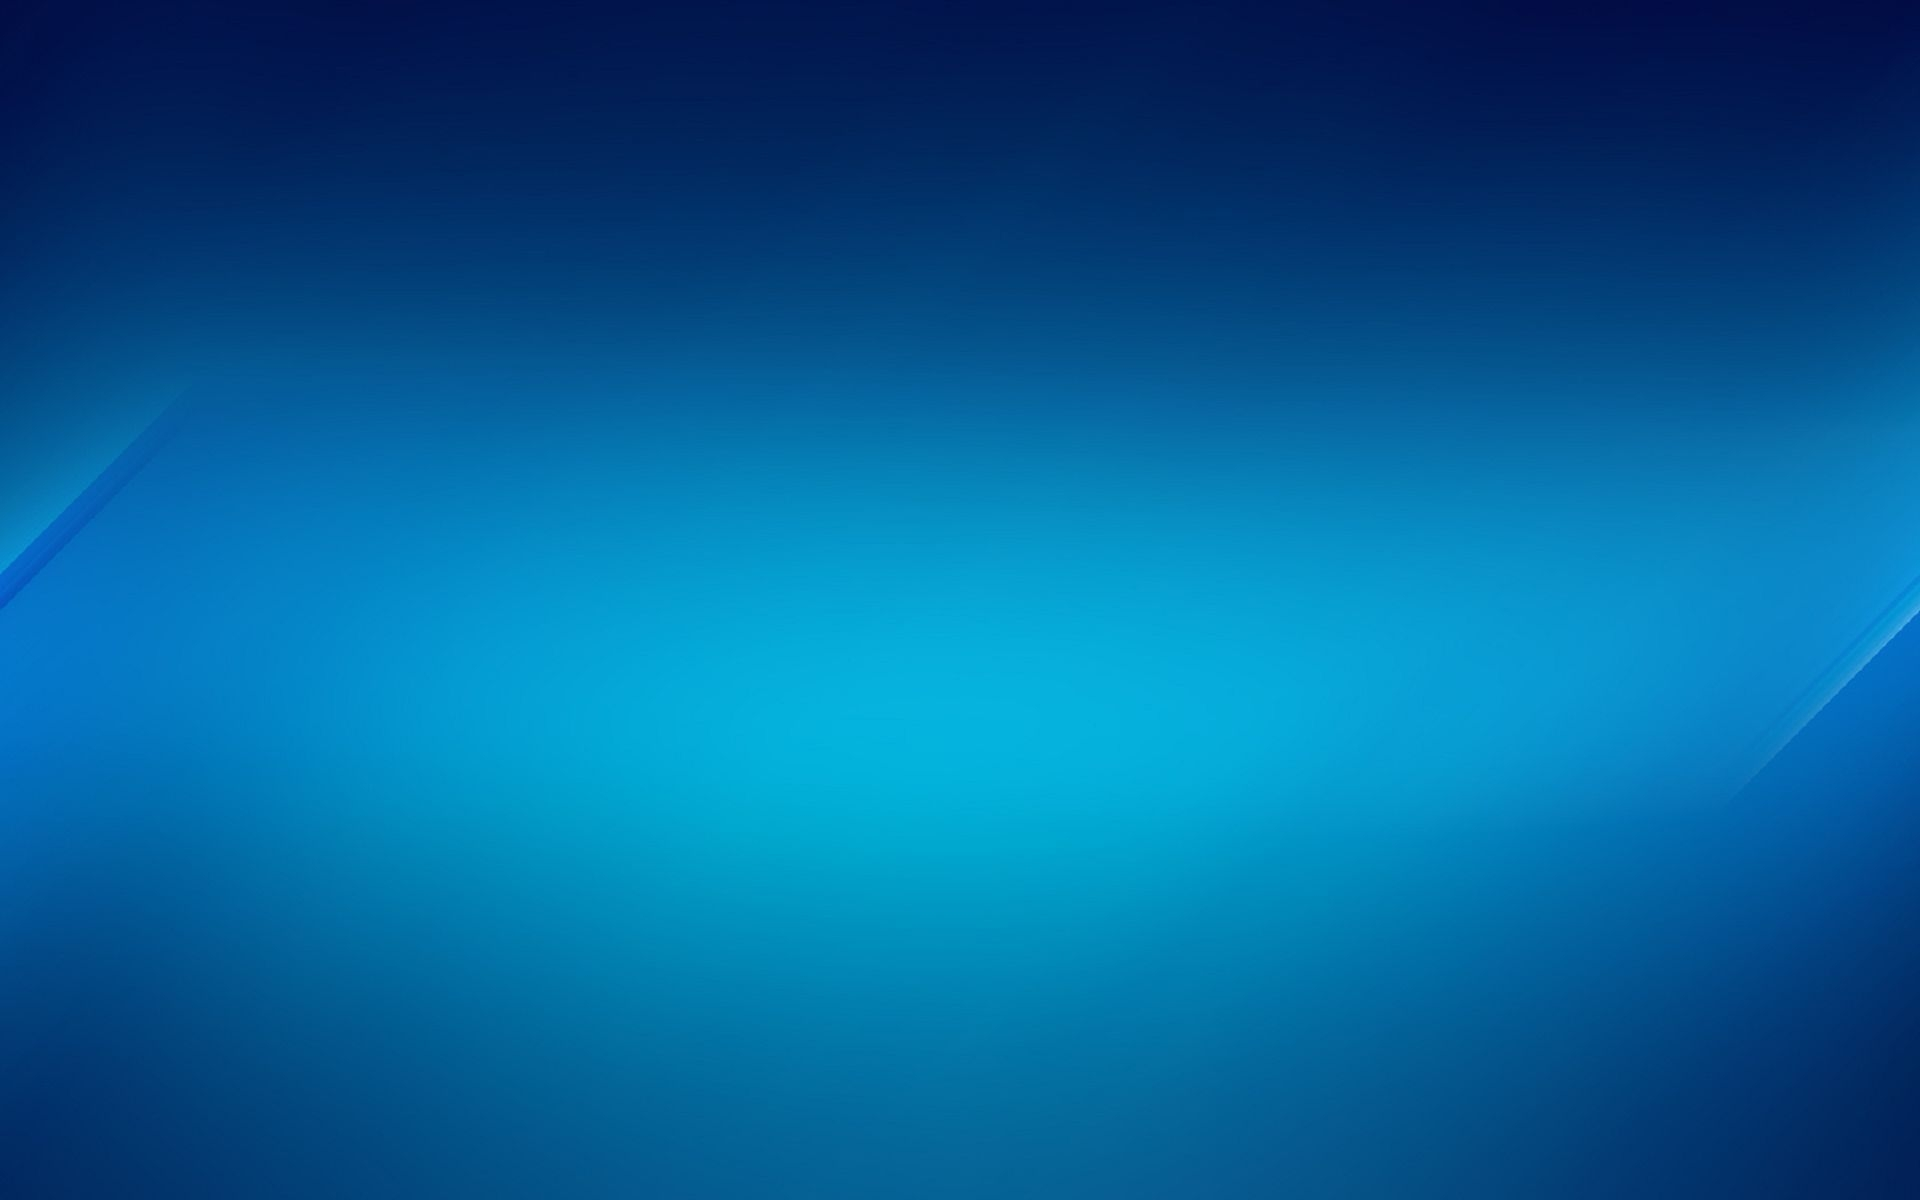 BlueBackground